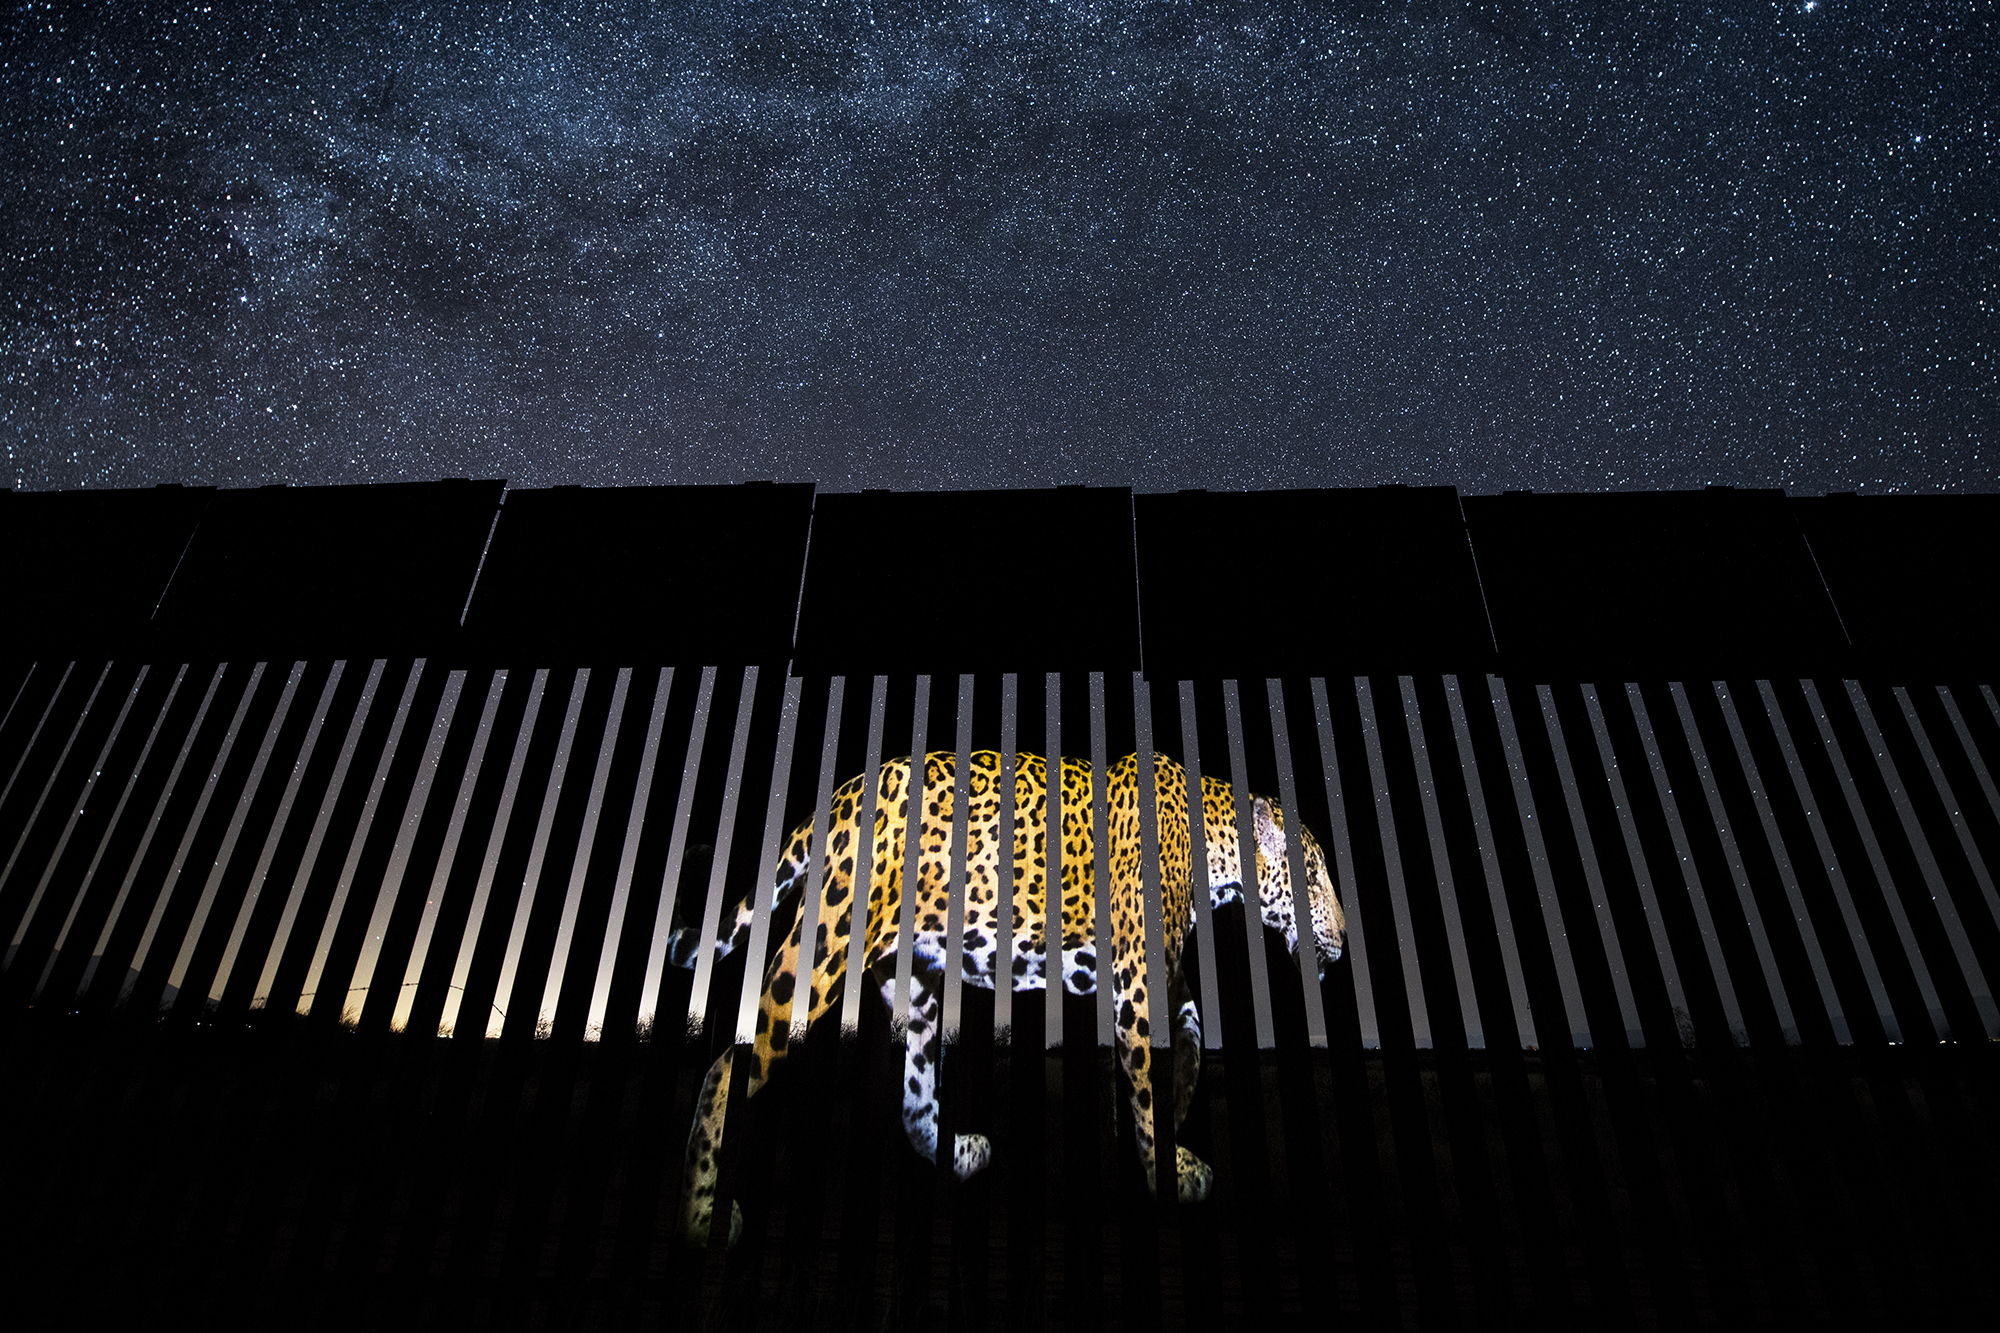 Under a luminous star-studded Arizona sky, an enormous image of a male jaguar is projected onto a section of the US-Mexico border fence